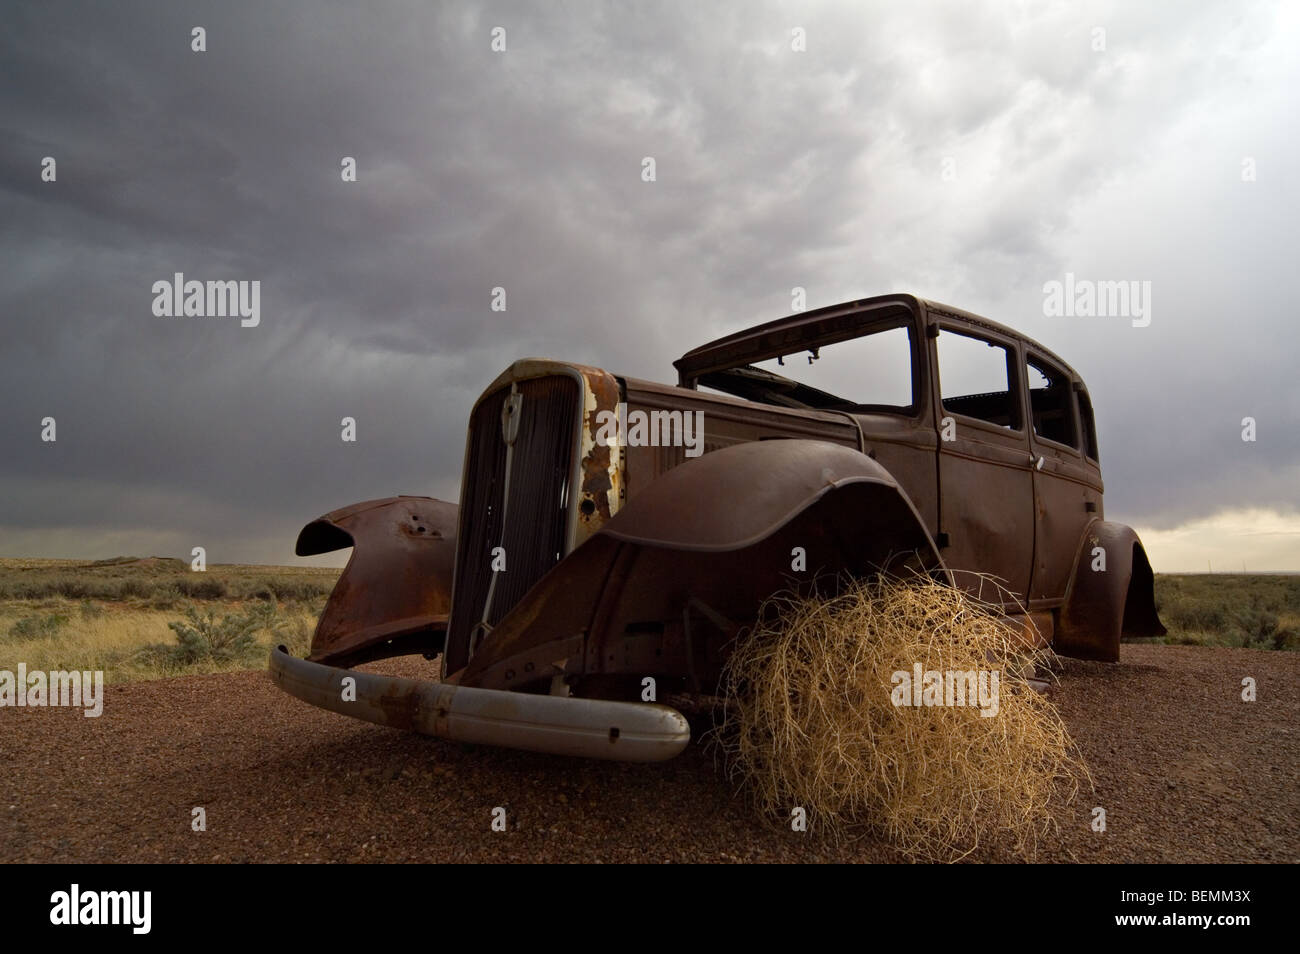 Old rusty car and Prickly Russian Thistle / Tumbleweed (Salsola tragus / Salsola iberica) Arizona, US - Stock Image